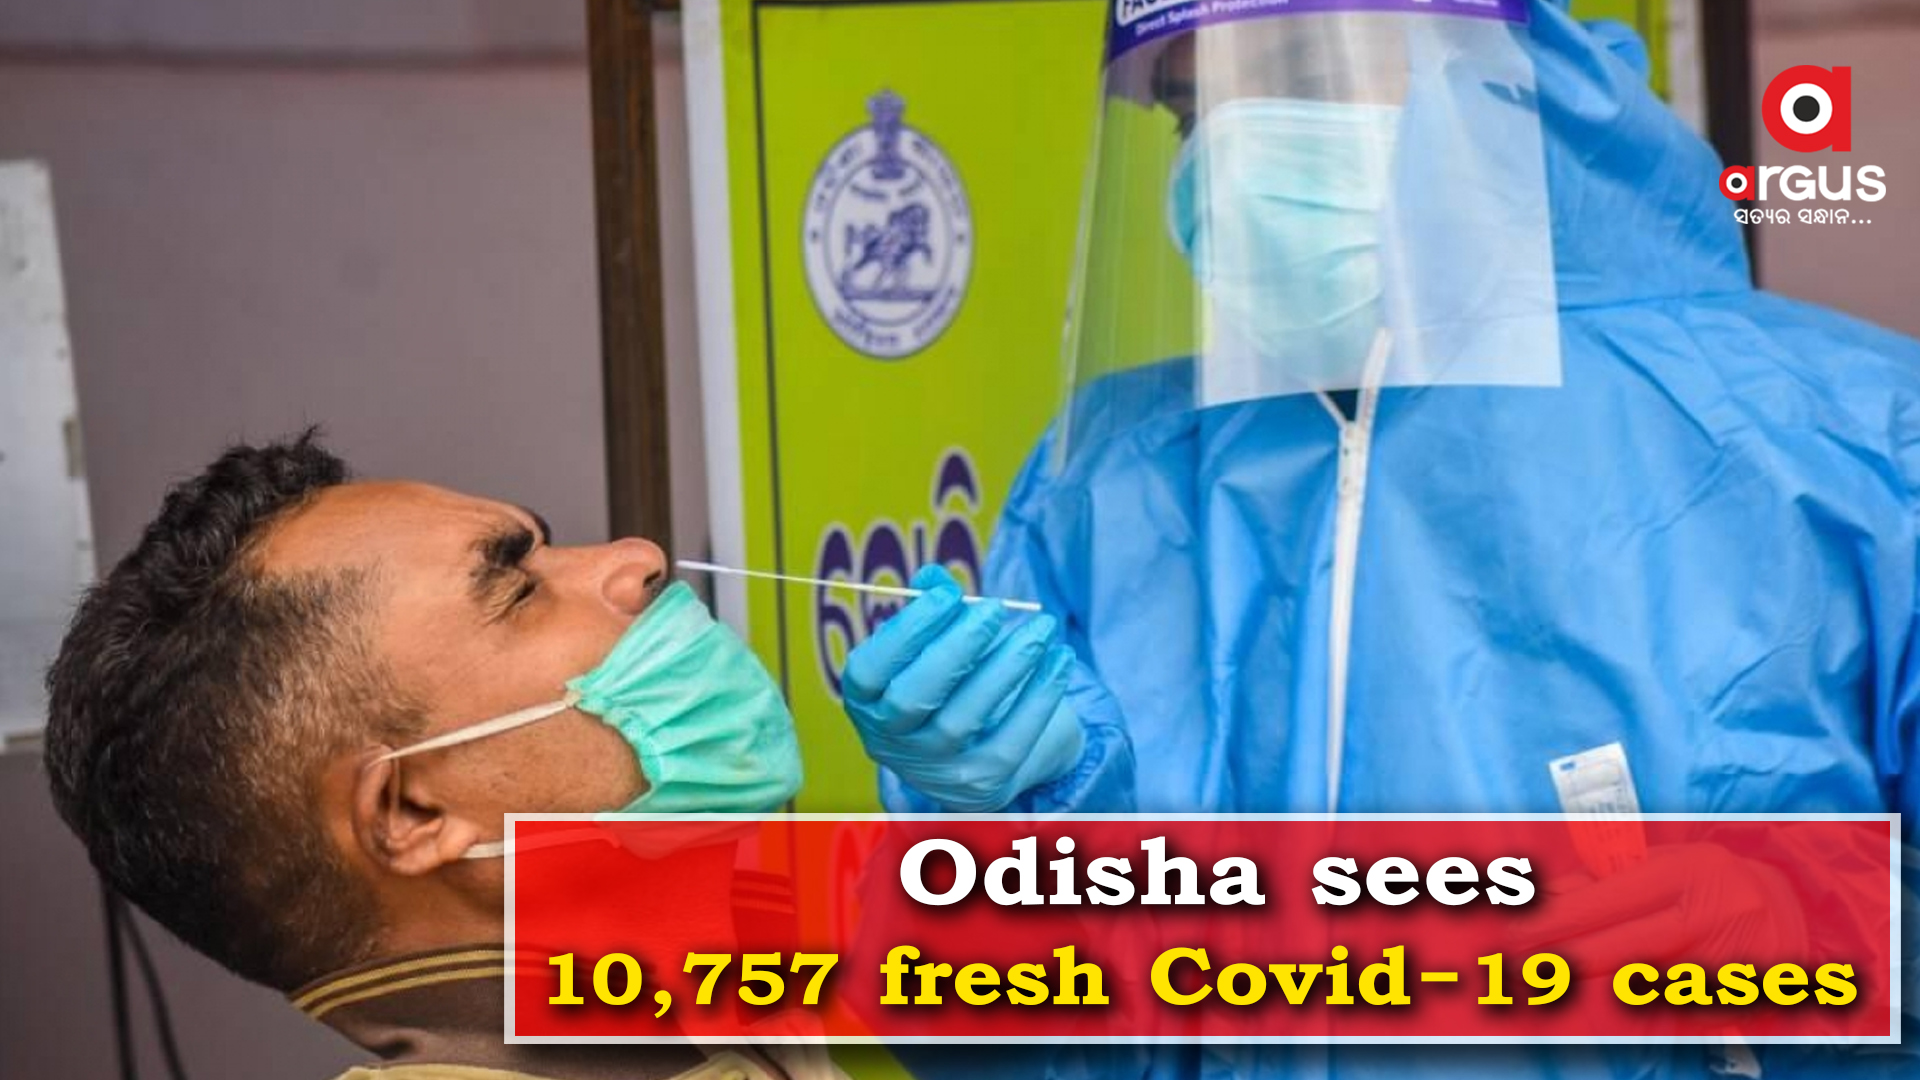 Odisha reports 10,757 new Covid-19 cases in last 24 hours